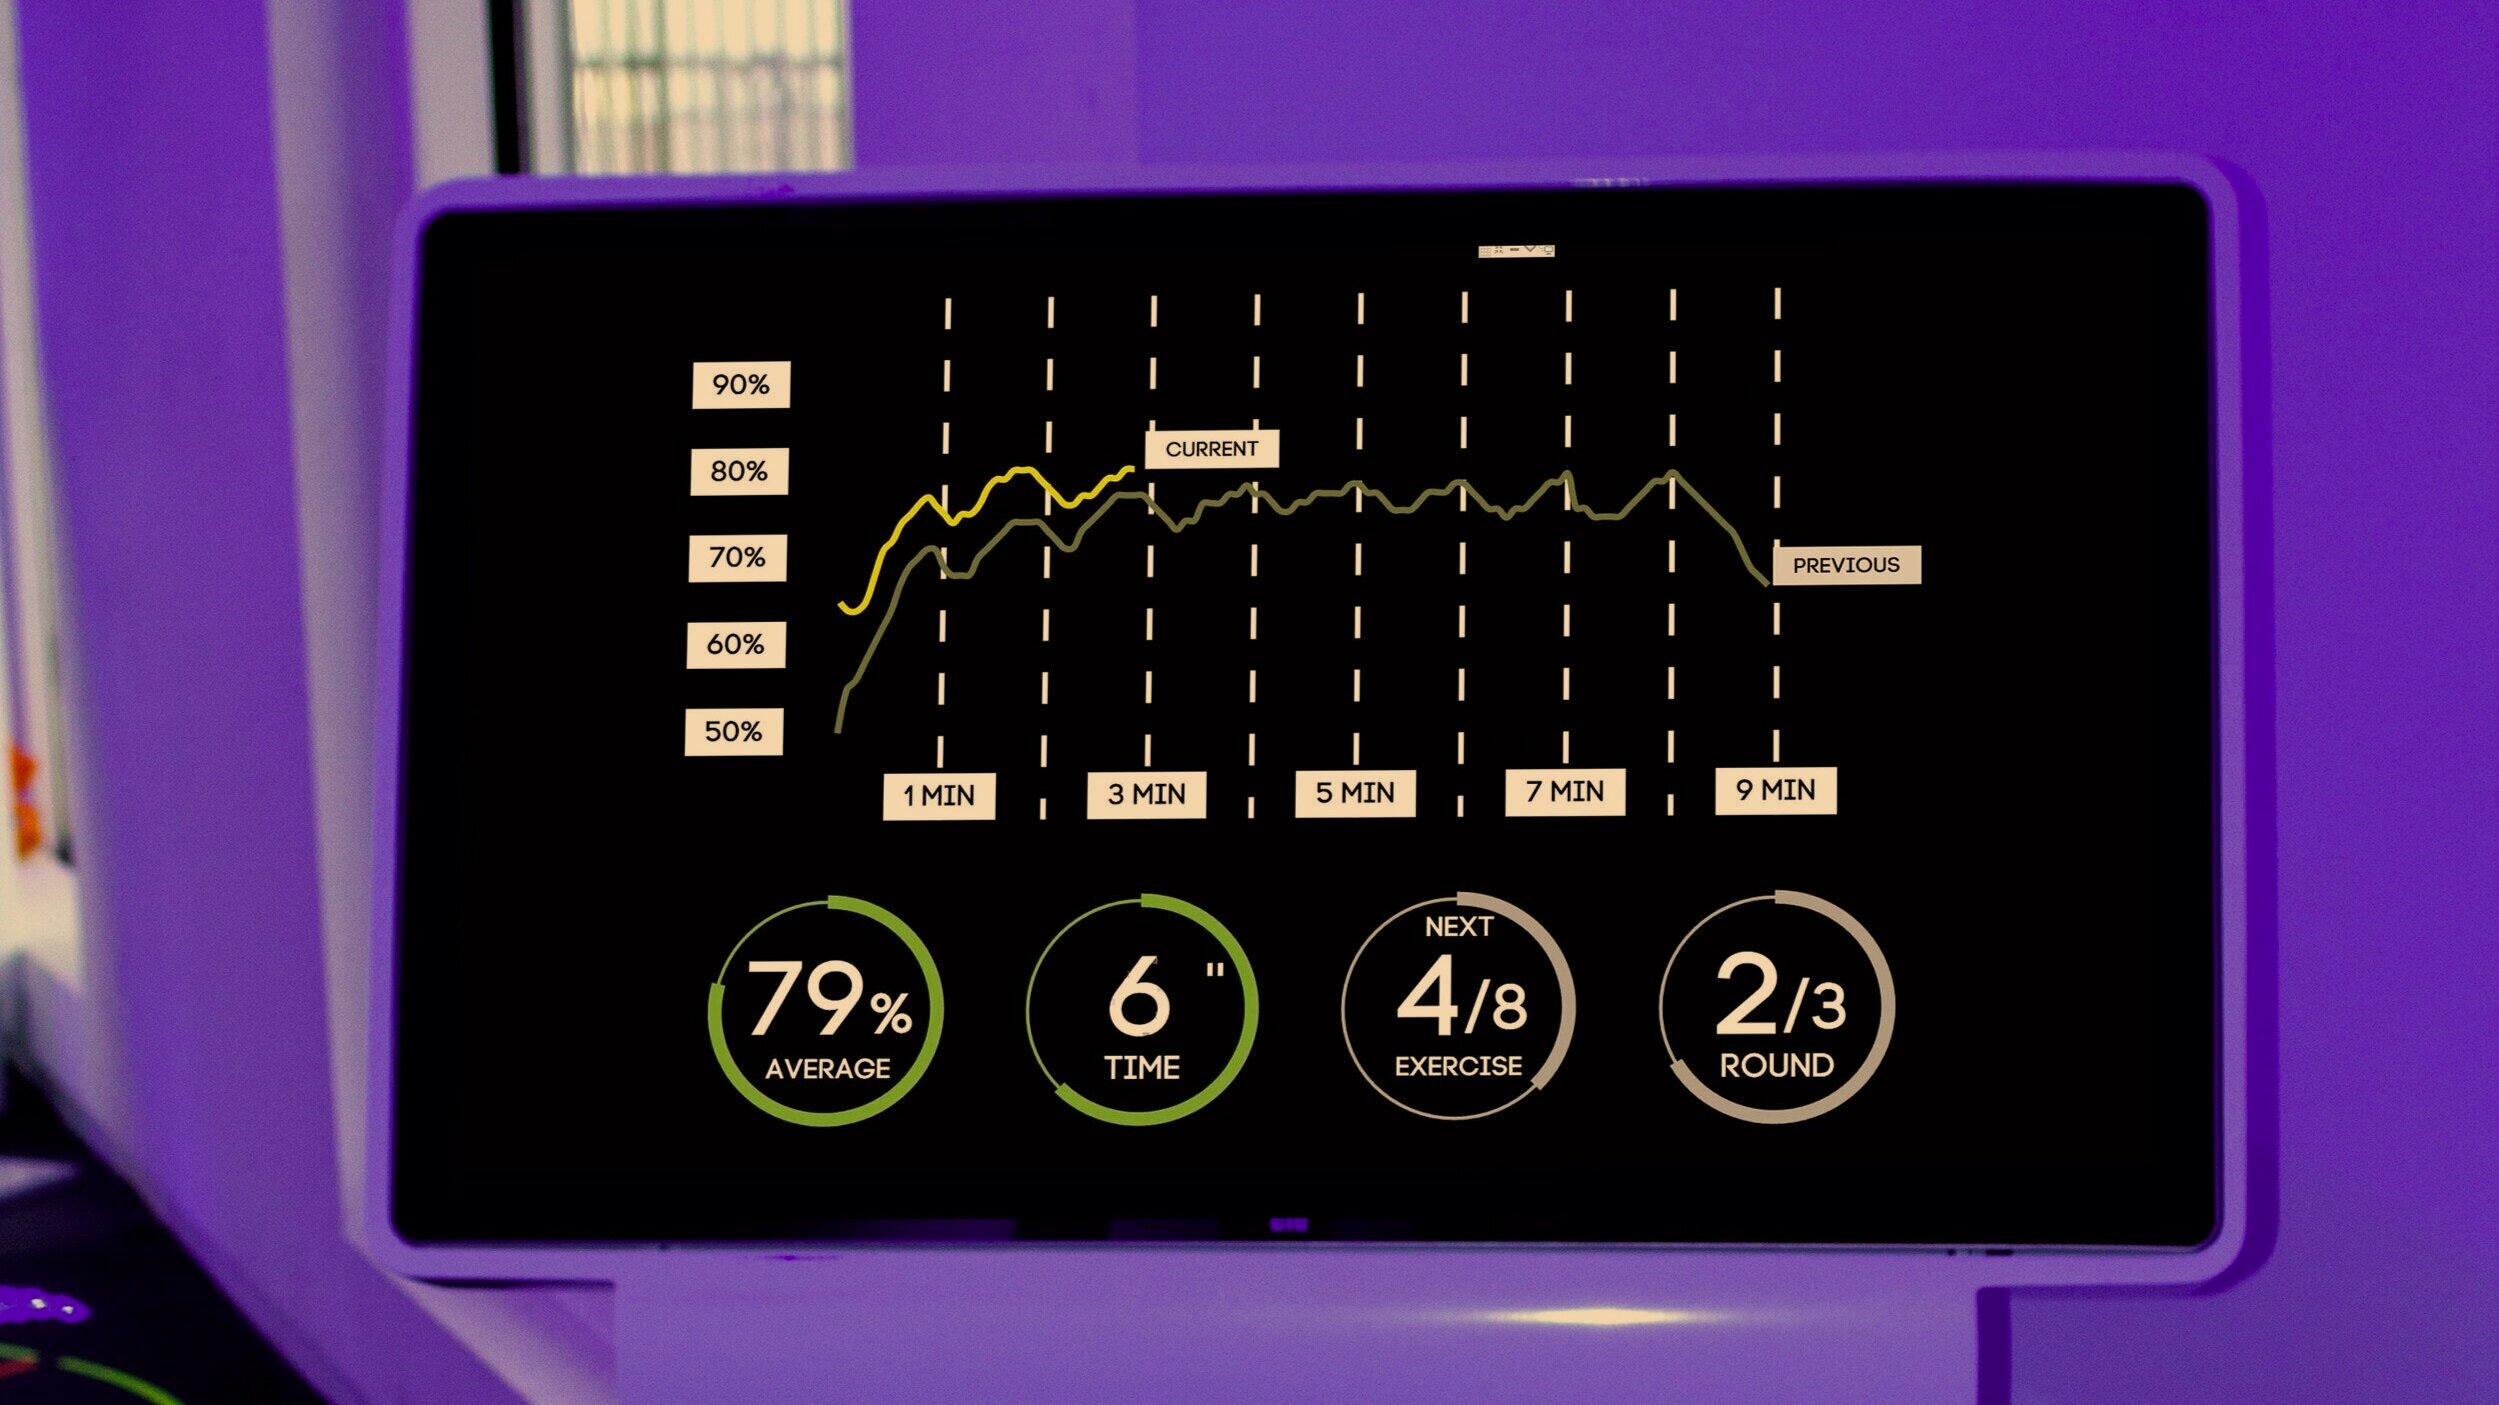 HEART RATE TECHNOLOGY - Our heart rate monitors help you scale the workout to your unique fitness level as you work through our heart rate zones. The data also lets you and your coach know when you should push a little harder or scale back and recover.